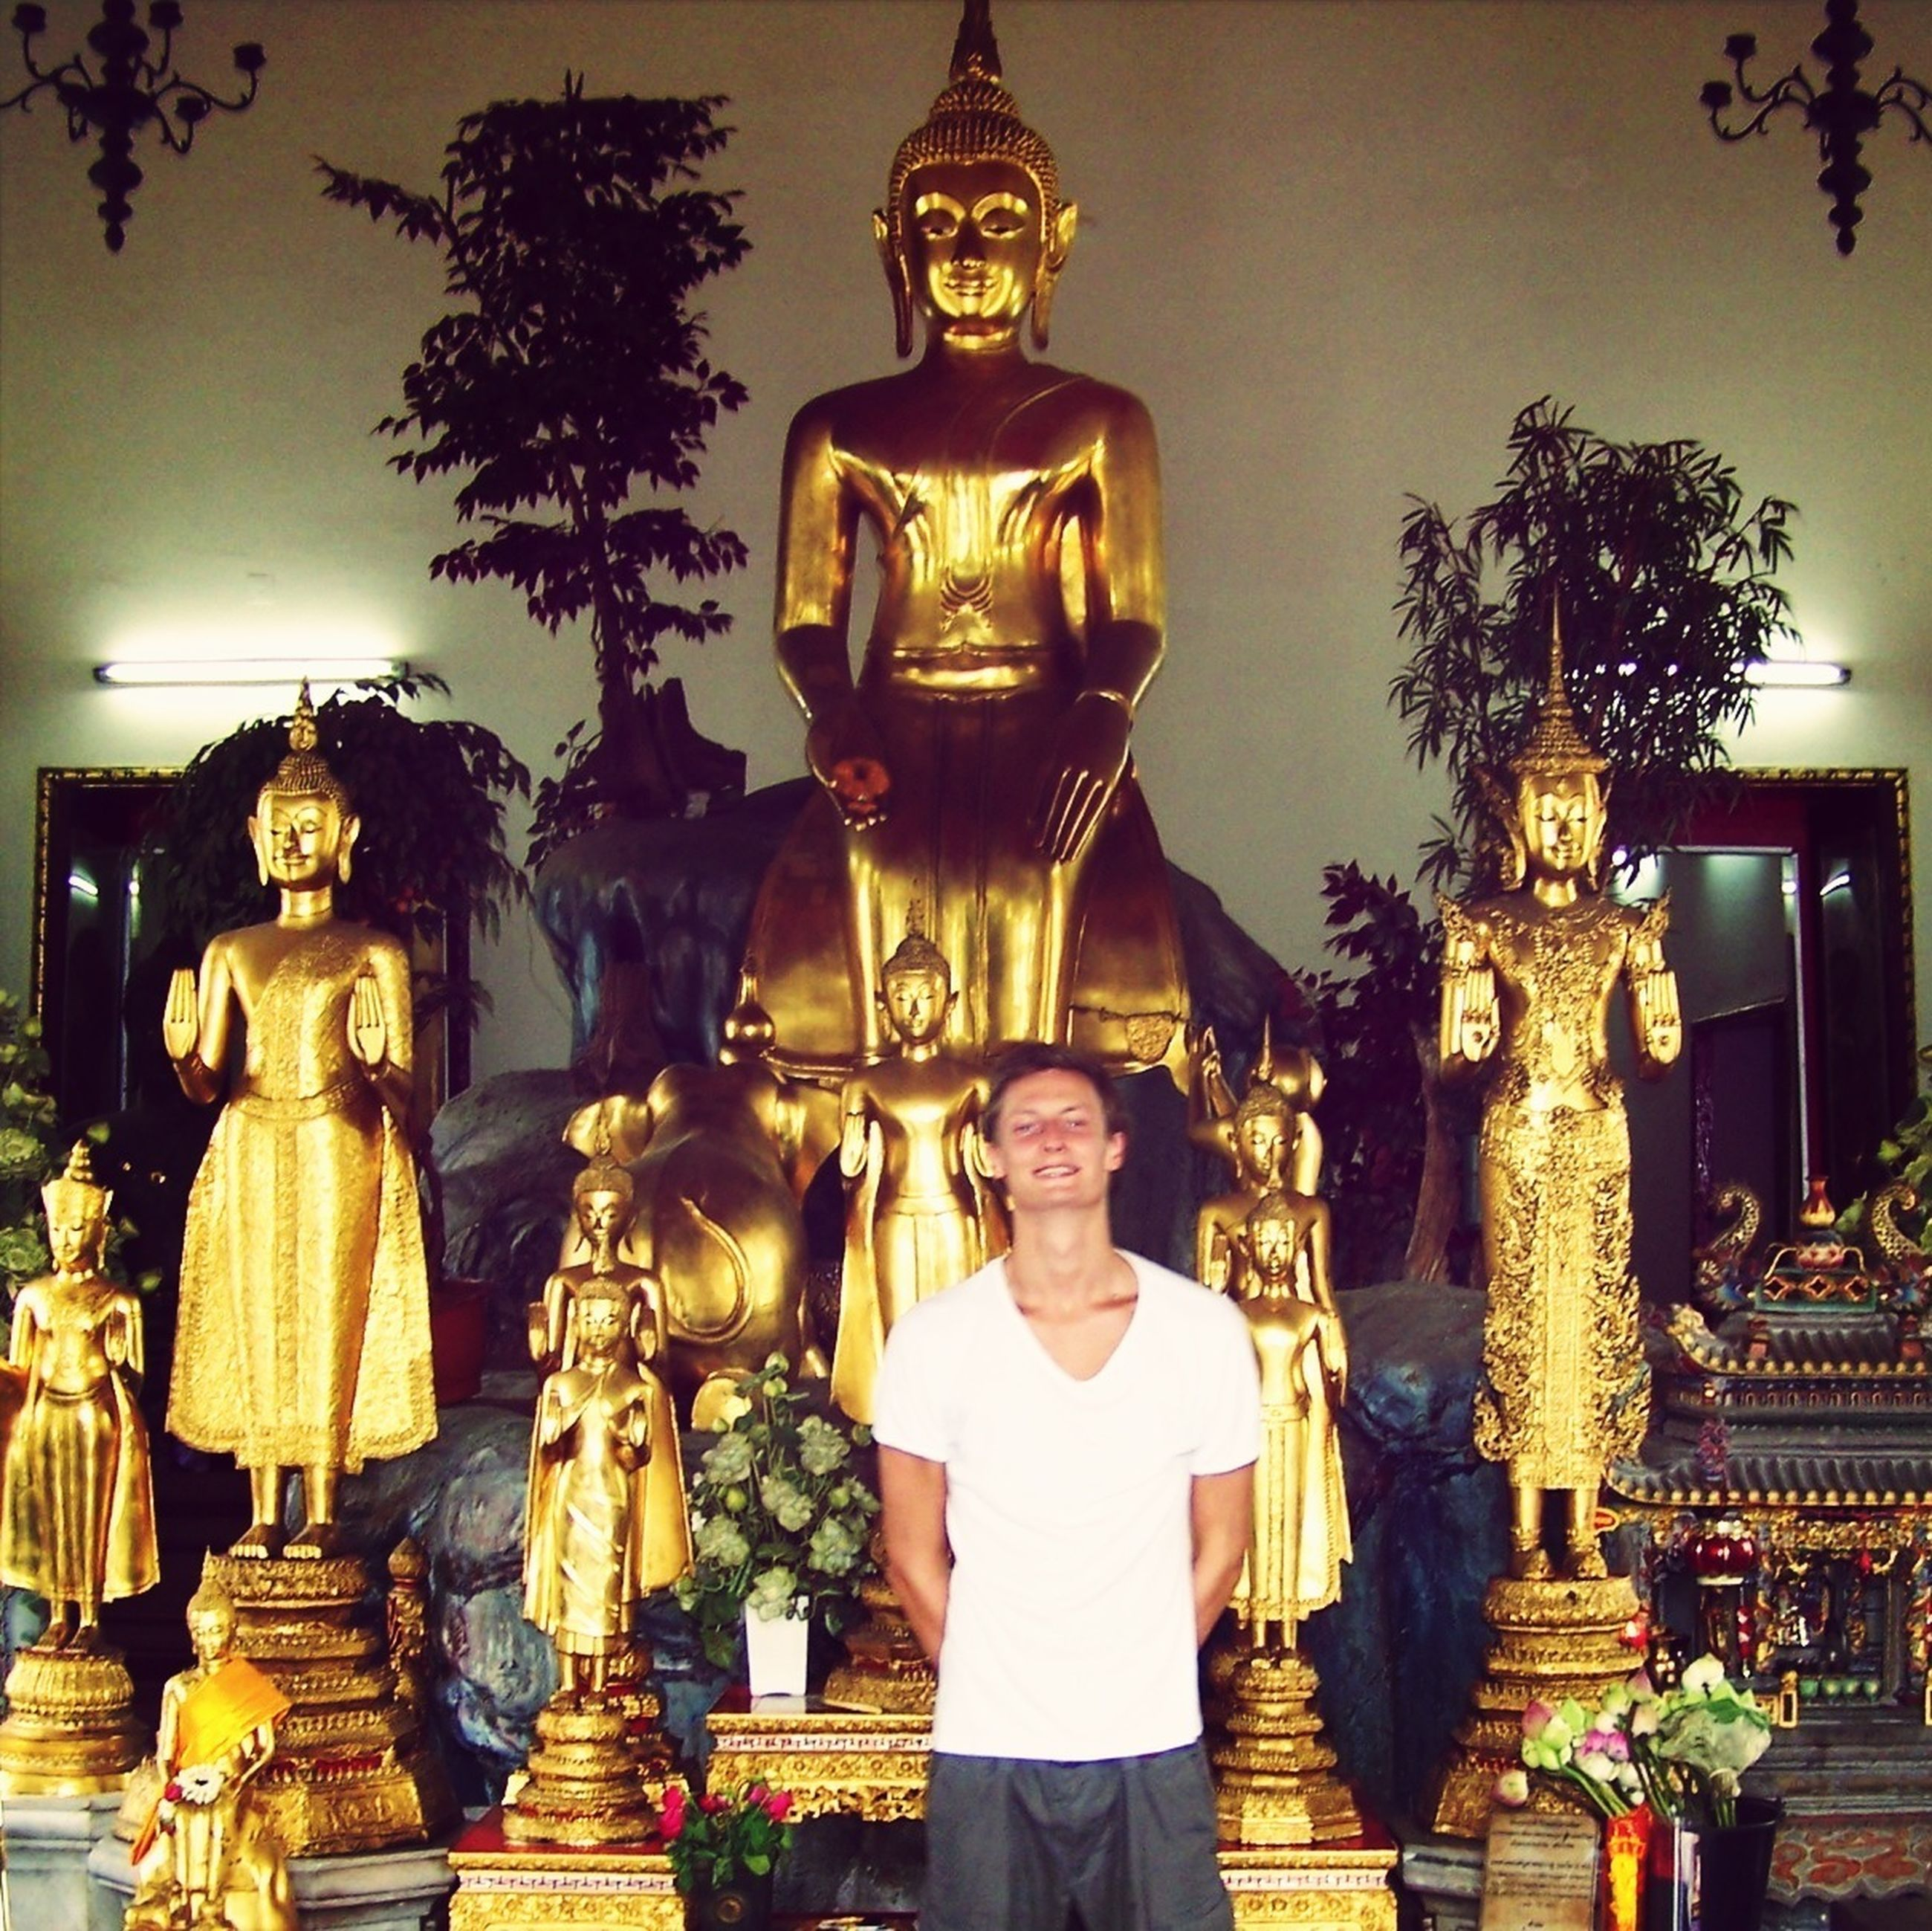 religion, spirituality, place of worship, illuminated, temple - building, buddha, lighting equipment, low angle view, human representation, statue, tradition, indoors, night, cultures, sculpture, lantern, decoration